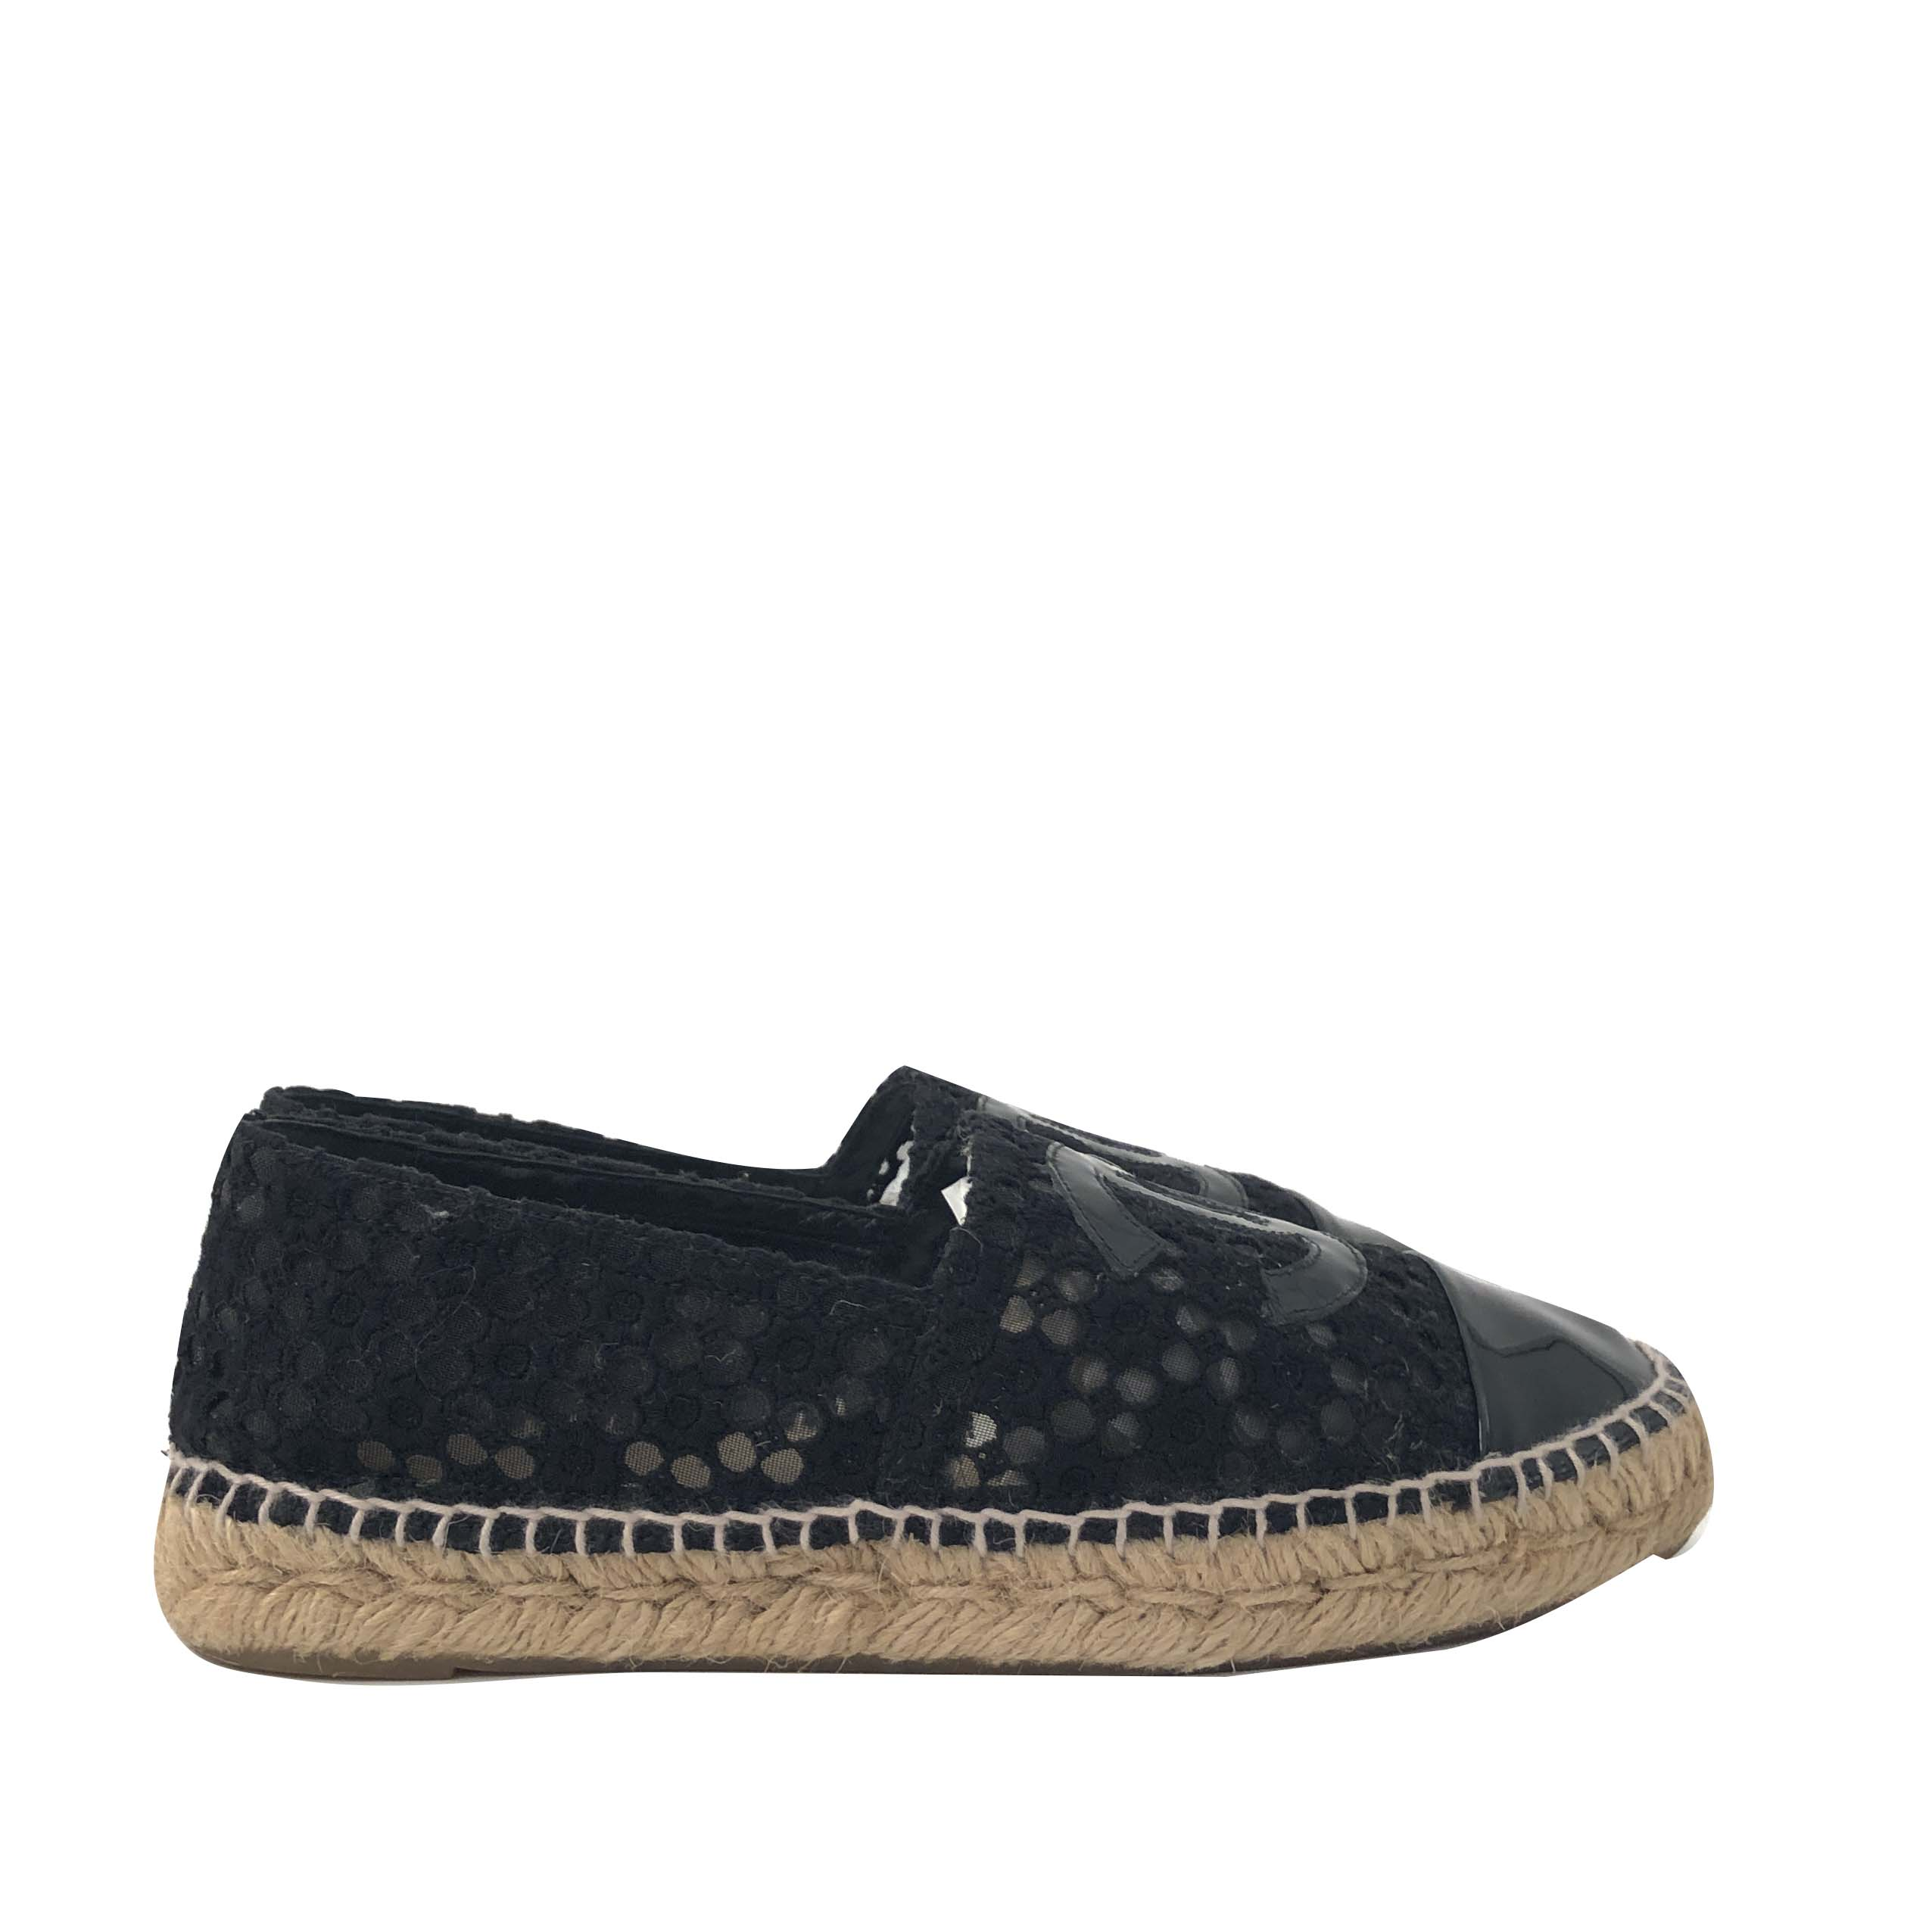 Chanel Black Canvas Wedge Espadrilles